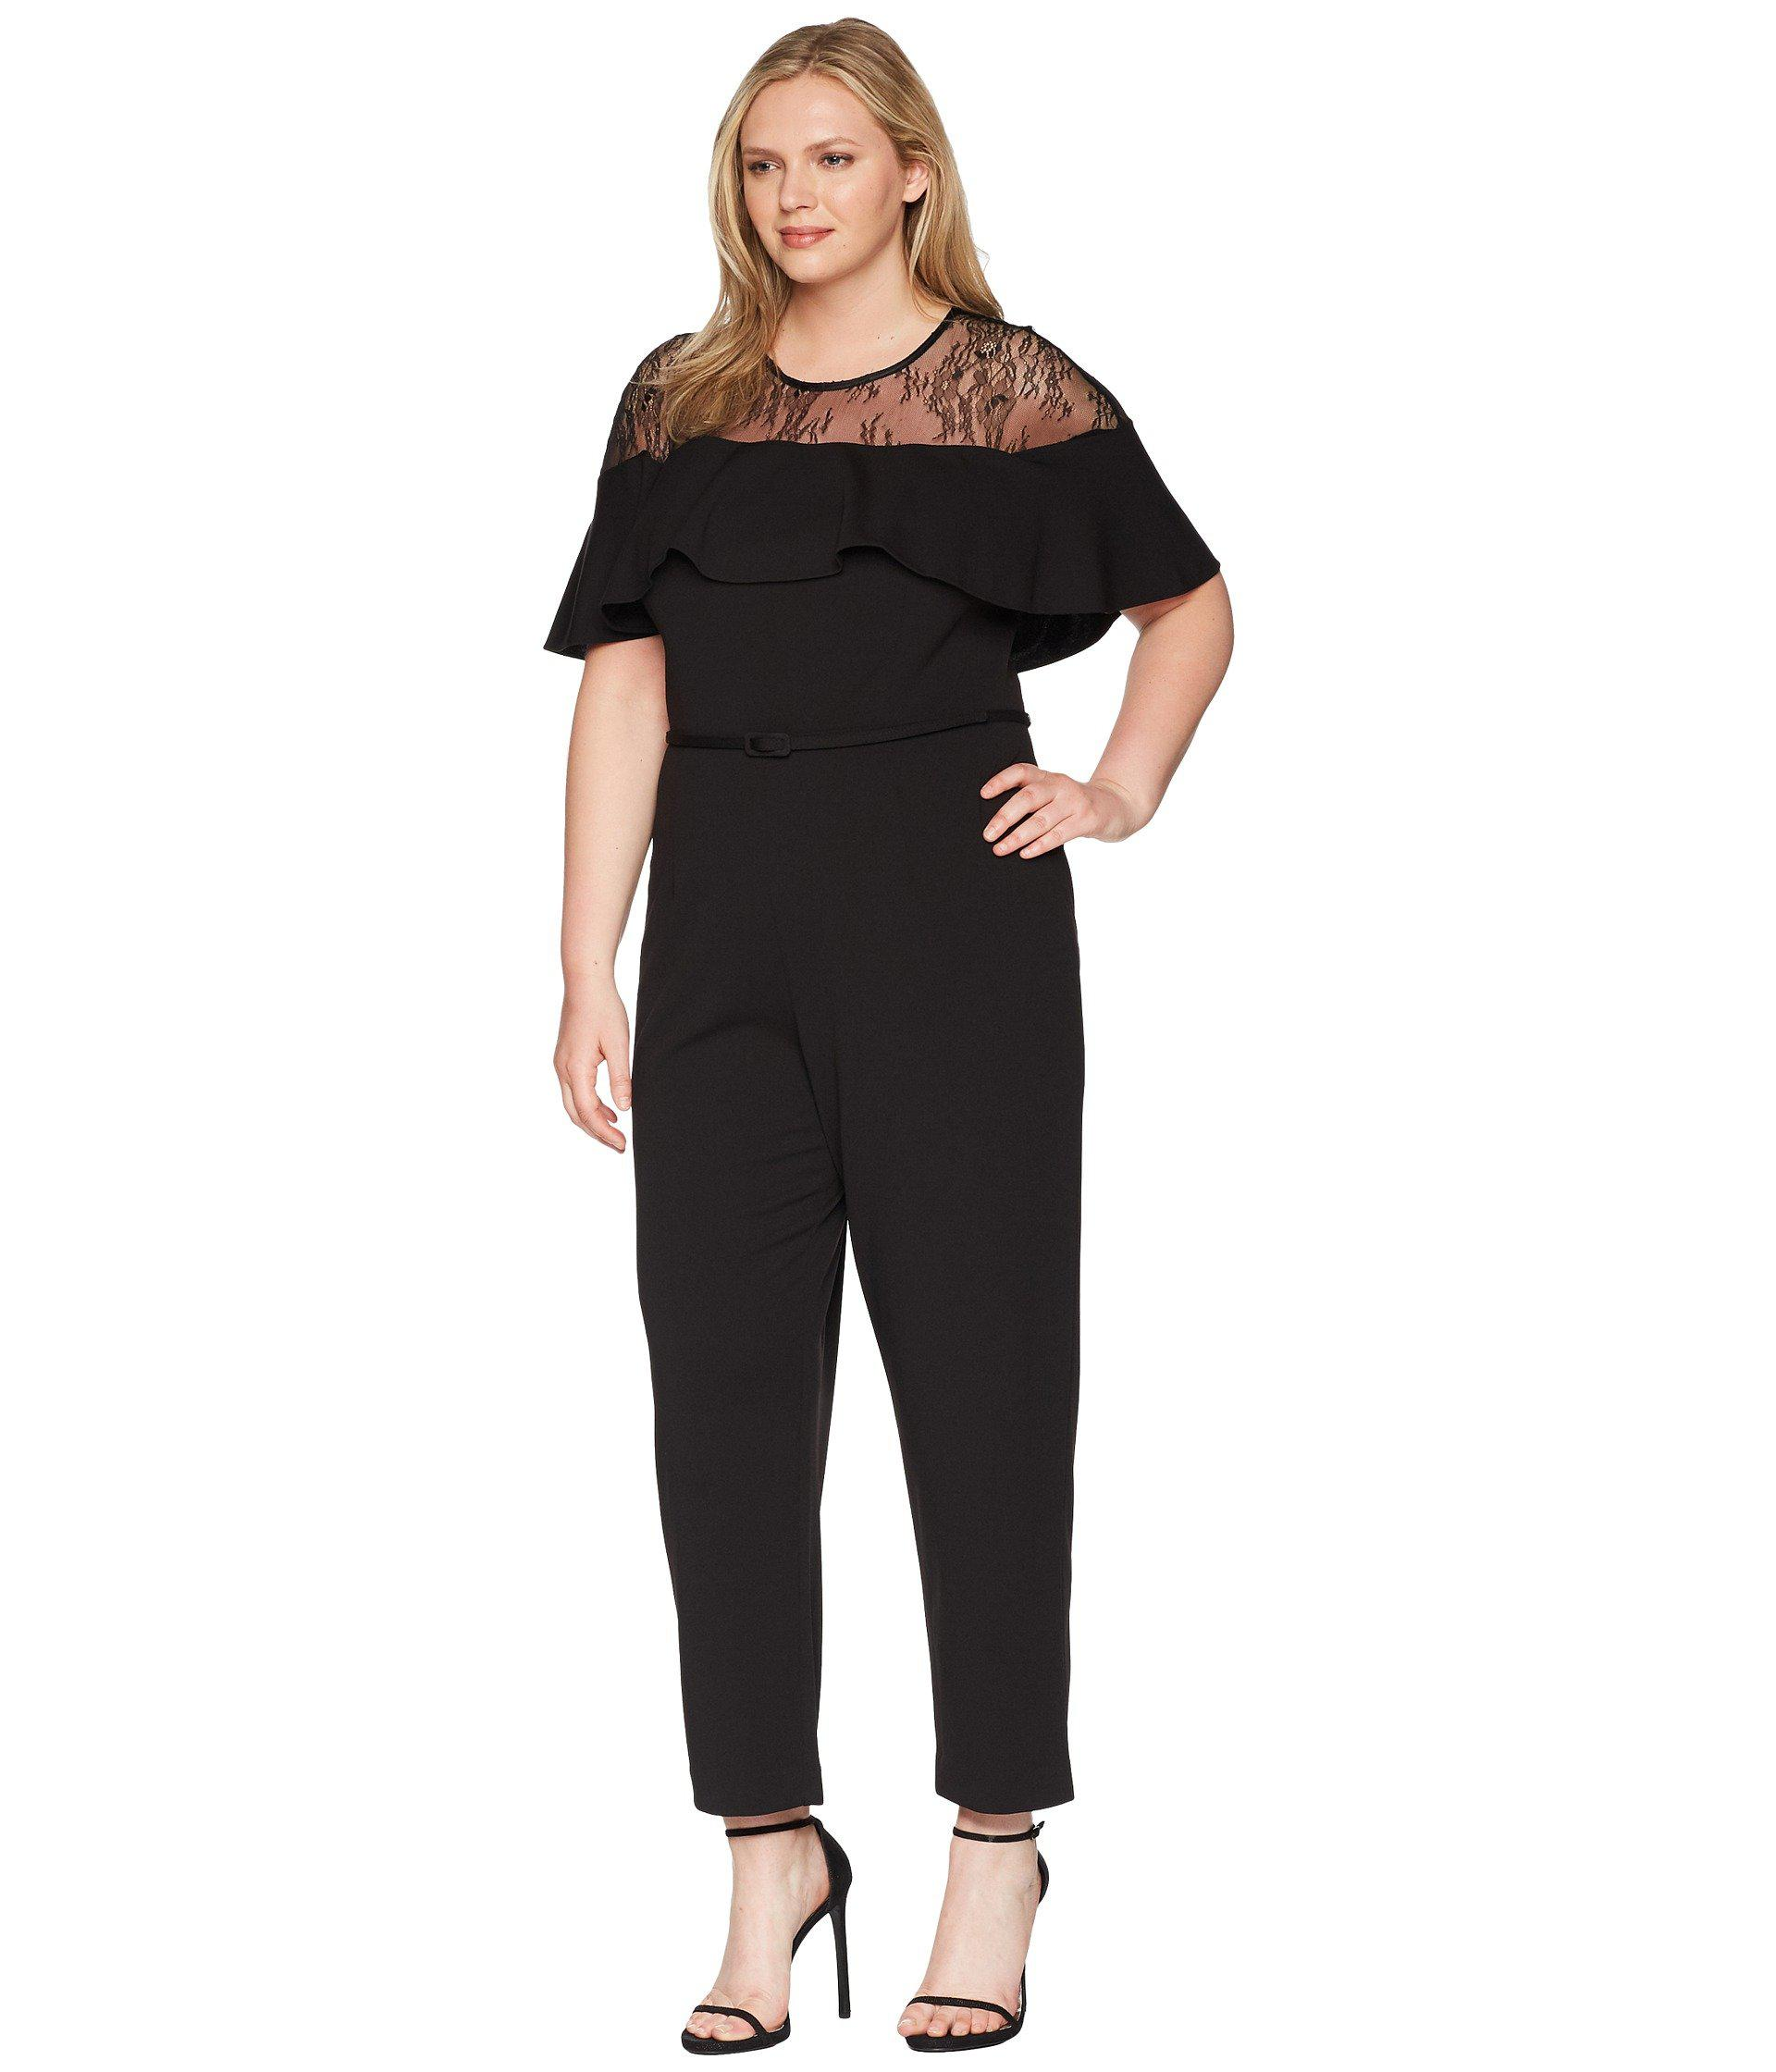 e11830ee05f57 Lyst - Adrianna Papell Plus Size Illusion Neckline Jumpsuit in Black - Save  30%